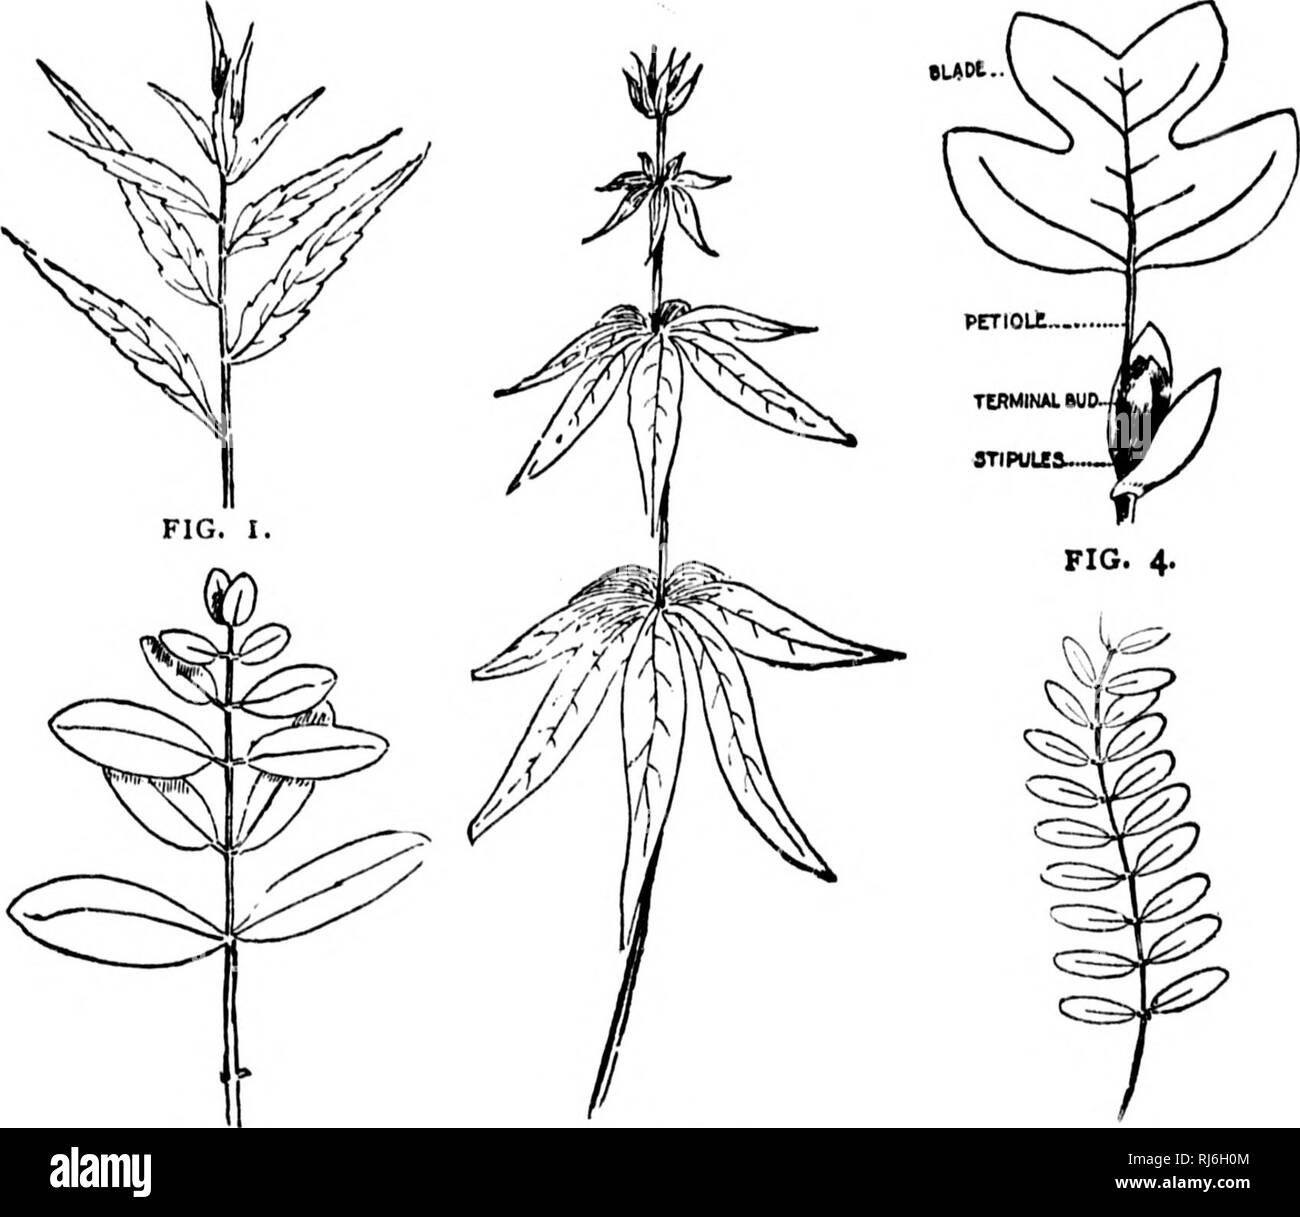 . A guide to the trees [microform]. Trees; Botany; Arbres; Botanique. ILLUSTRATED TERMS. rw i â I i when it is longer and more prominent than the others. (Fig. 4,) The numerous sub-divisions of the framework, Veinlets, and the finest of these Veinulets. In regard to their venation, leaves are divided into (i) those that are Netted-Veined and (2) those that are Parallel- Veined. This feature is invariably in accord with the shape. FIG. 2. FIG. 3. FIG. S- I and character of the leaf and should therefore be most care- fully observed. I. Netted-Veined Leaves are those in which the veins branch off - Stock Image